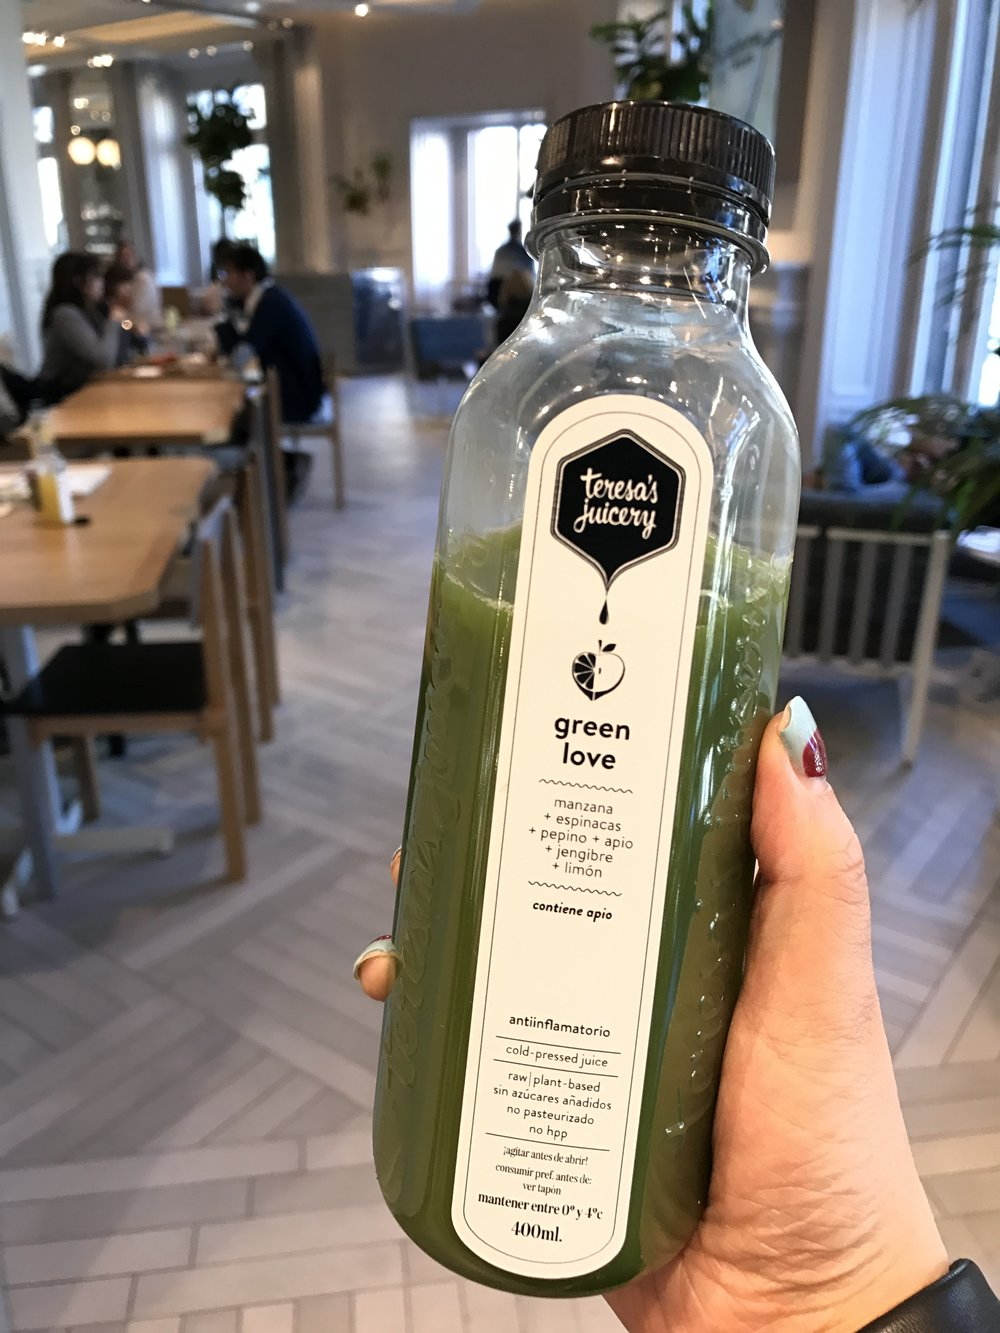 On a separate day, I found another Flax & Kale at the top floor of H&M and tried their juice - Green Love. It was refreshing and delicious!